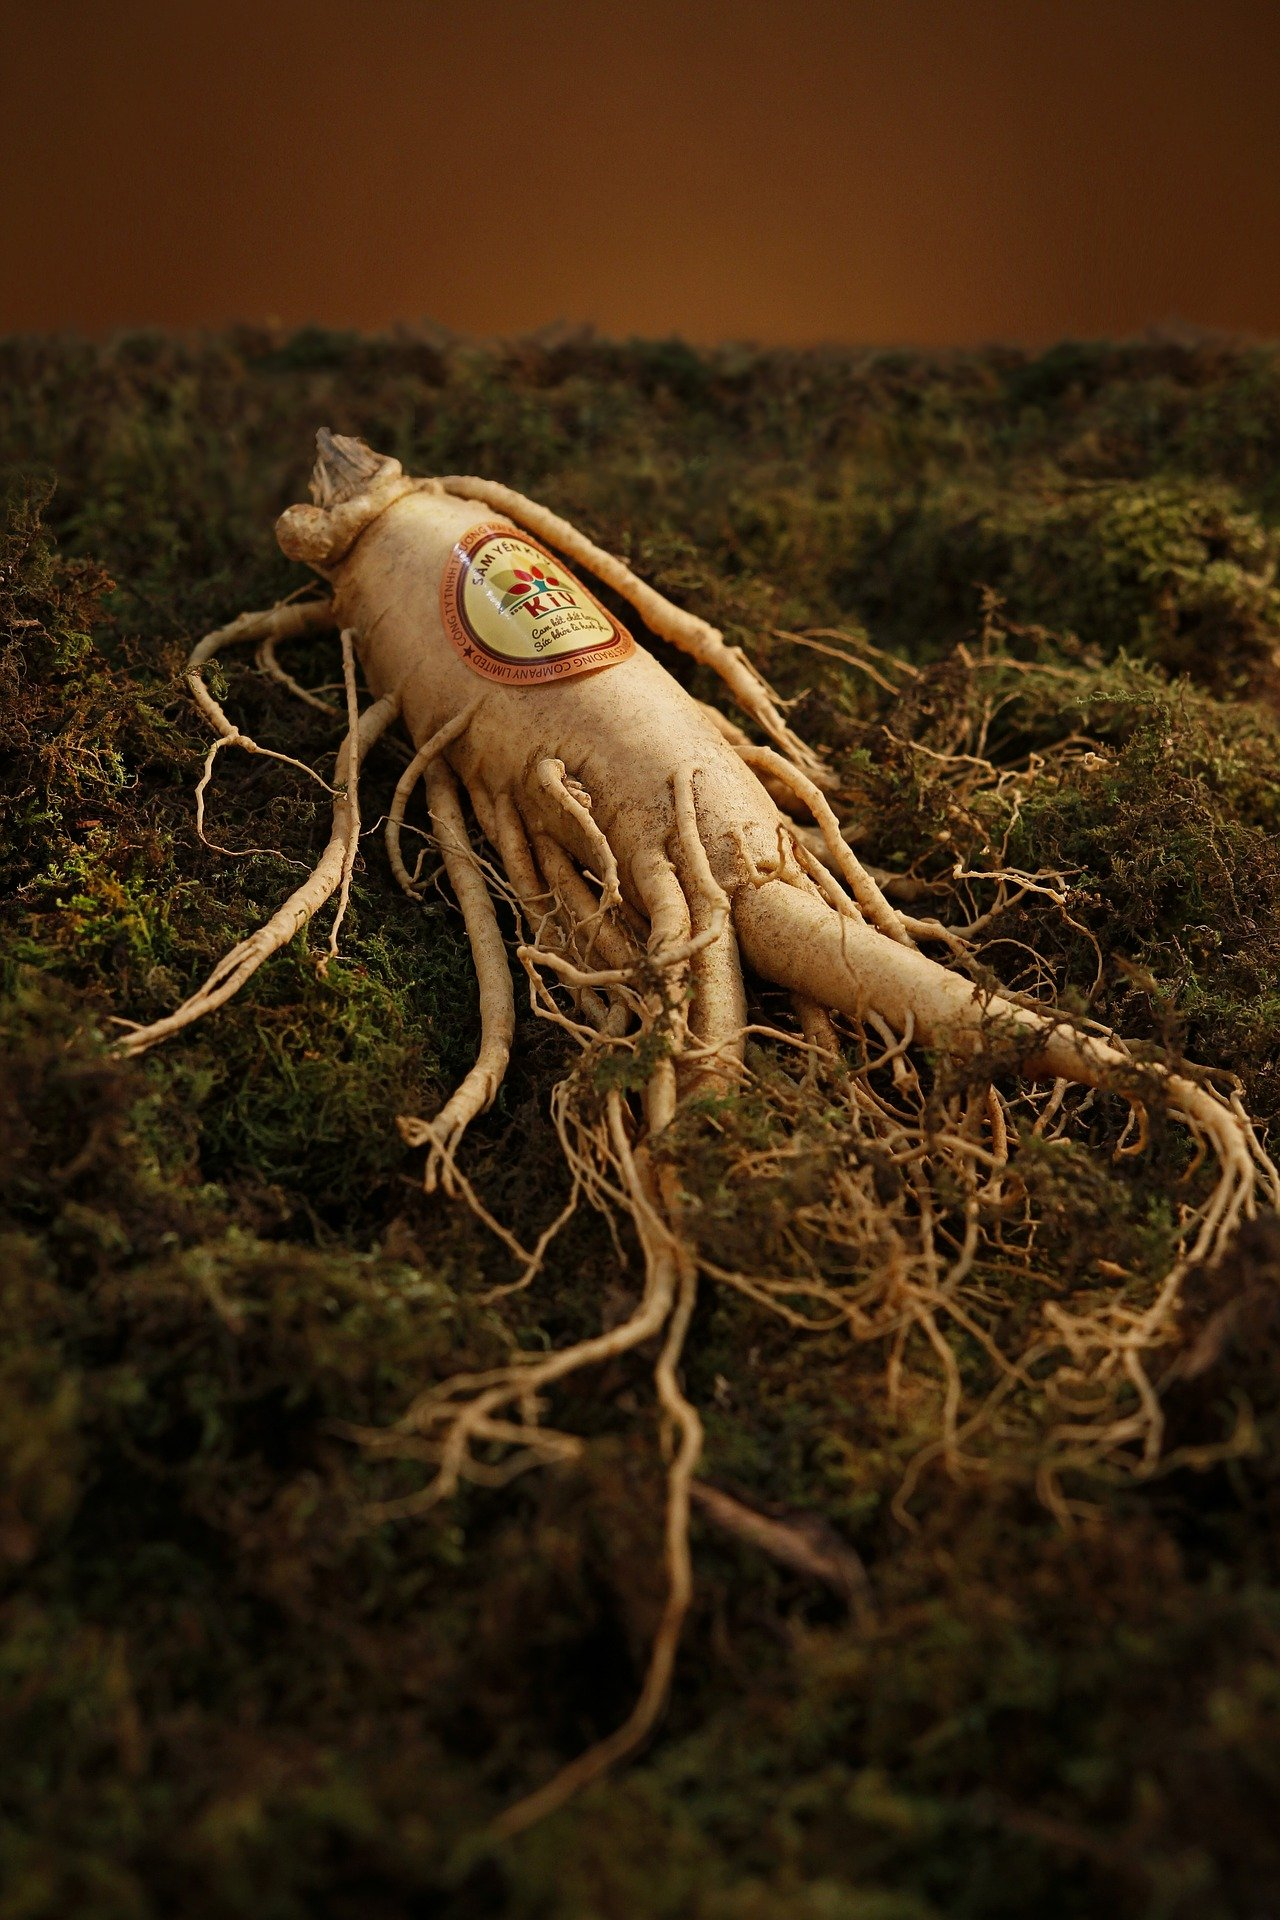 ginseng root also know as polygonatum, drying process